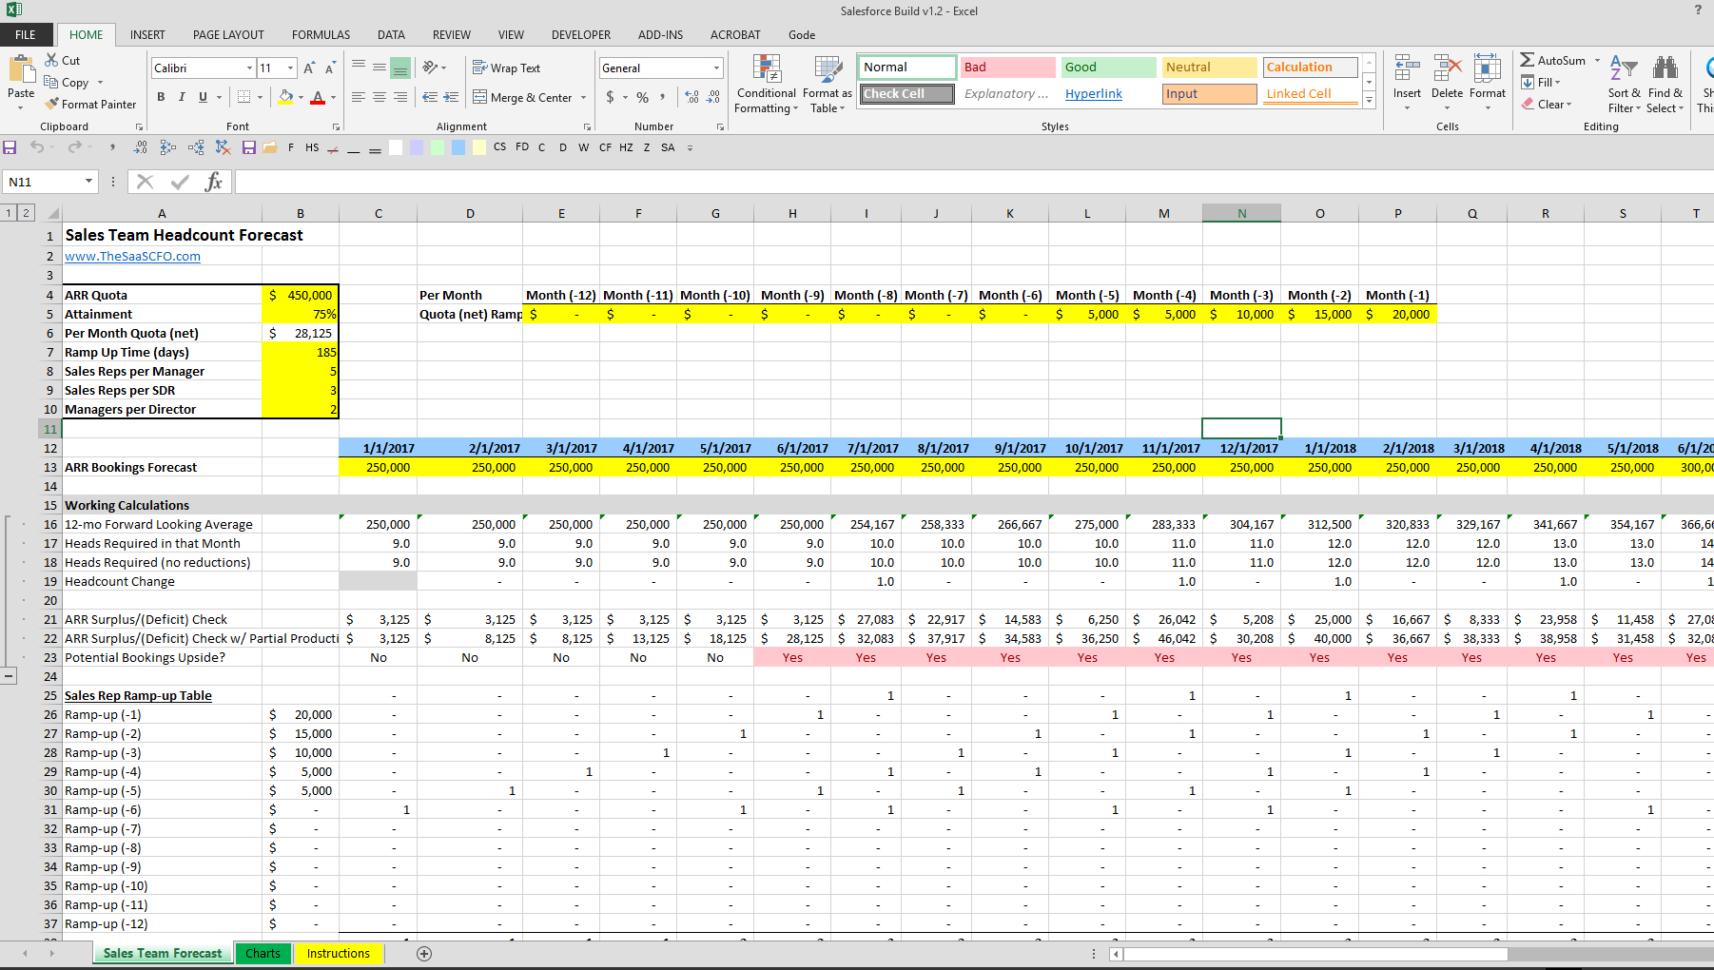 Saas Metrics Spreadsheet In Sales Team Headcount Forecast Spreadsheet  The Saas Cfo